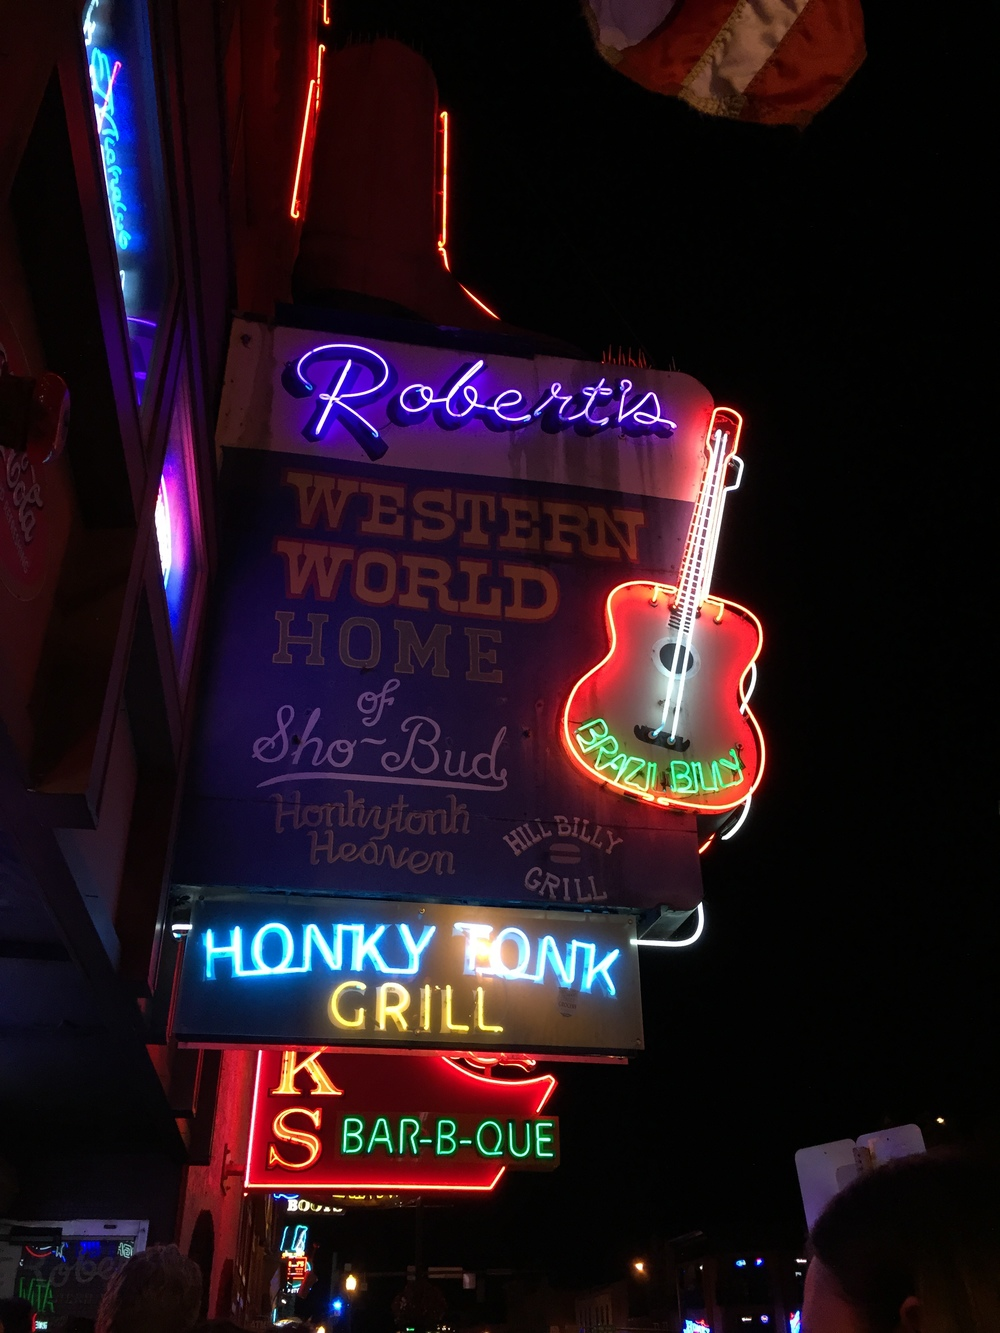 Robert's Western World: My most favoritest bar in all the honky tonk land!